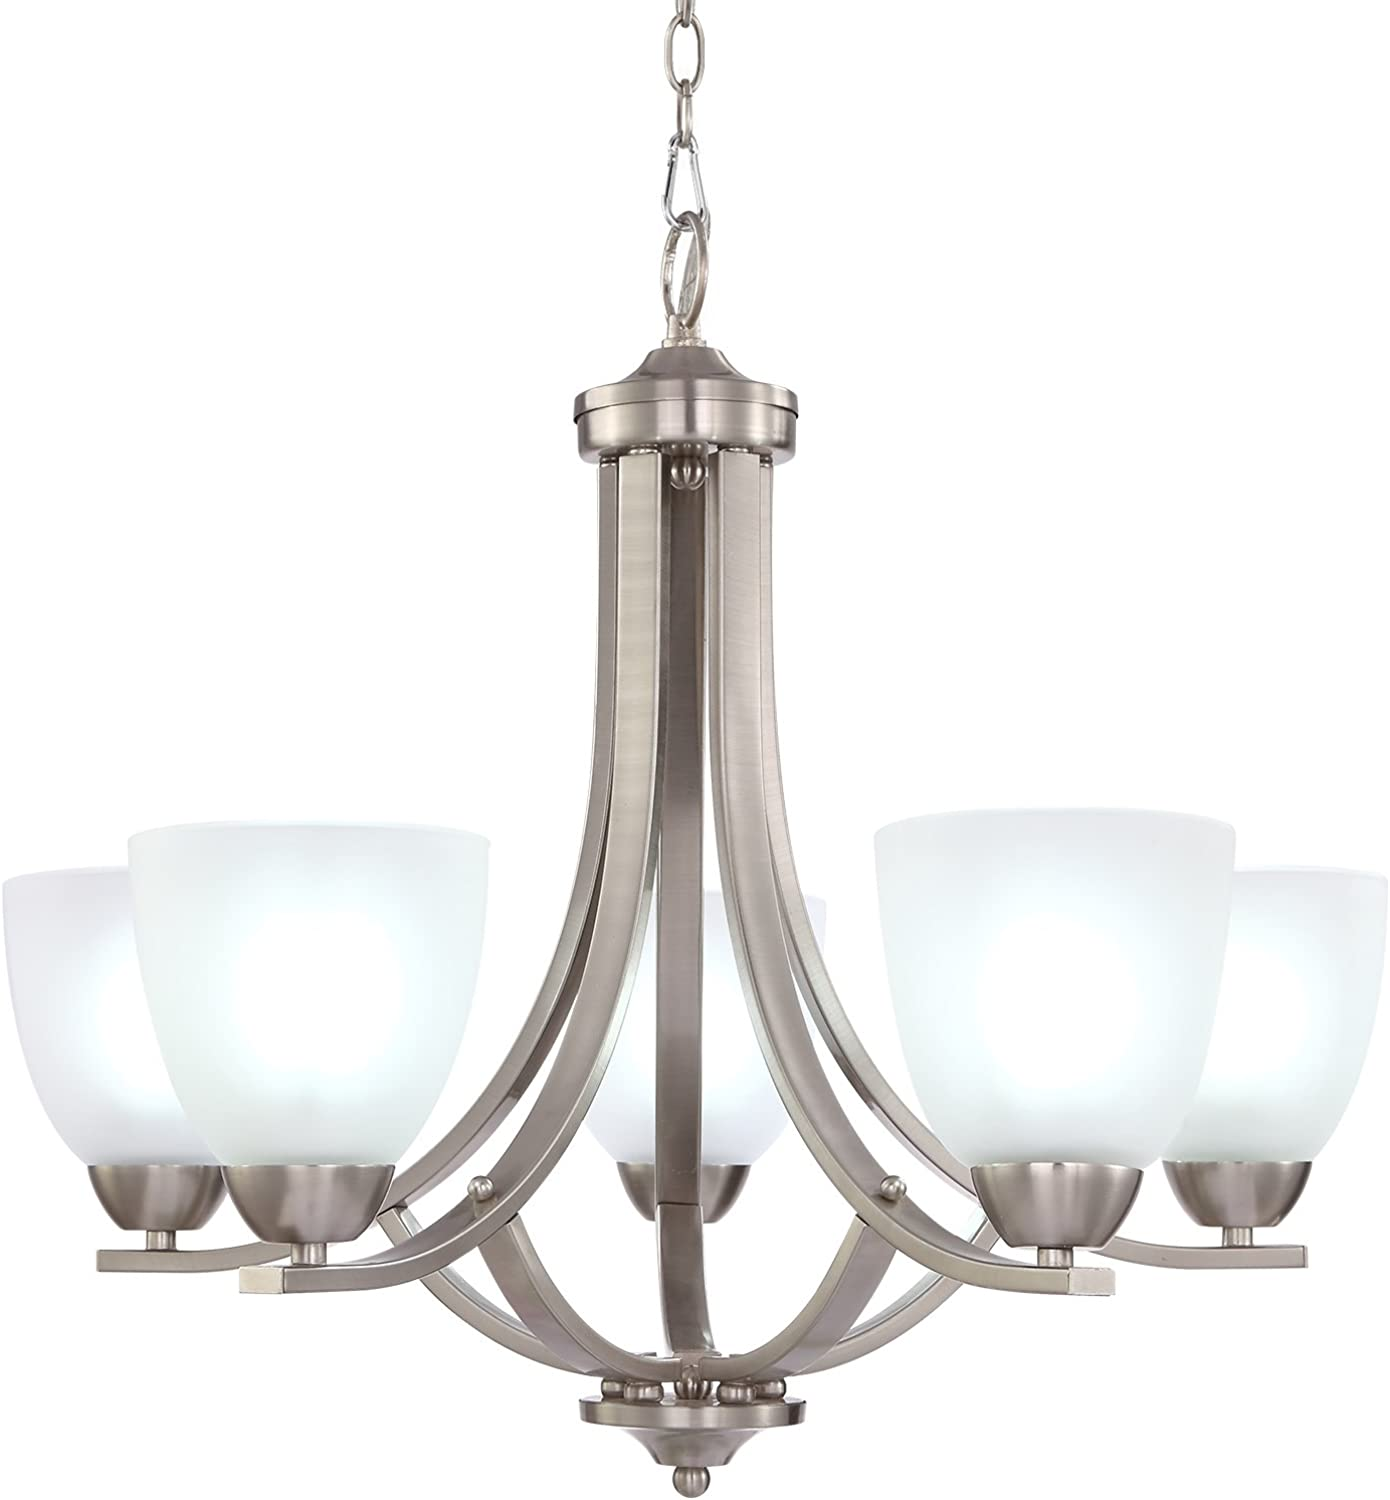 EPOWP 5-Light Large Chandeliers Contemporary Brushed Nickel Lighting(D88085)